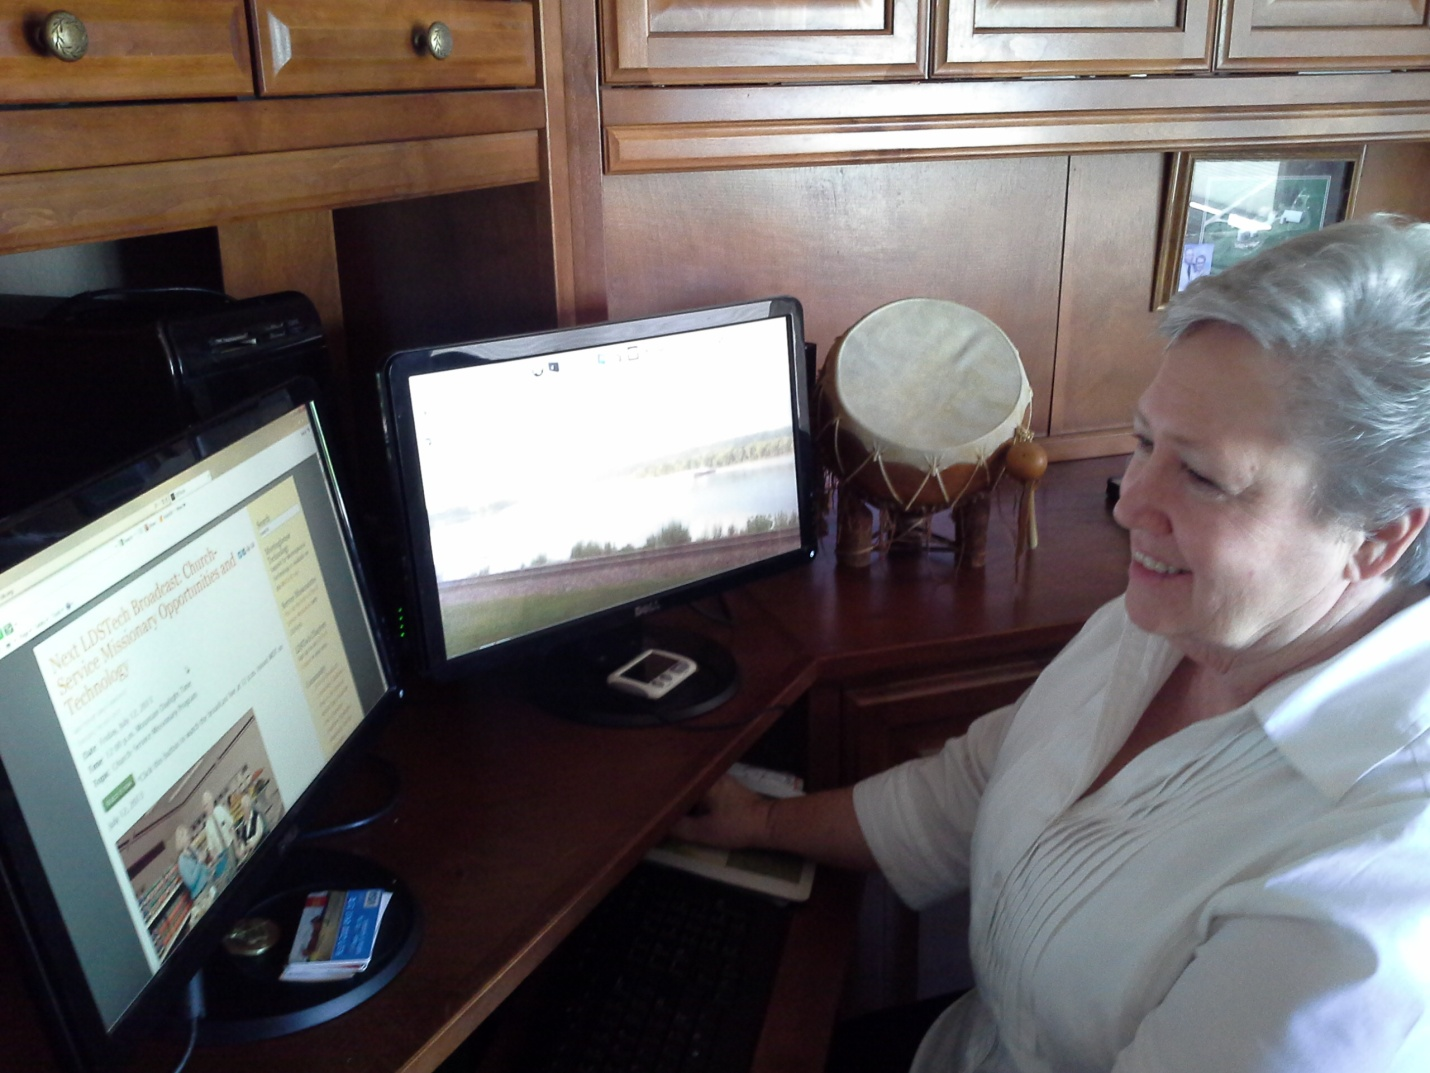 Sister Gardner sitting at her home computer